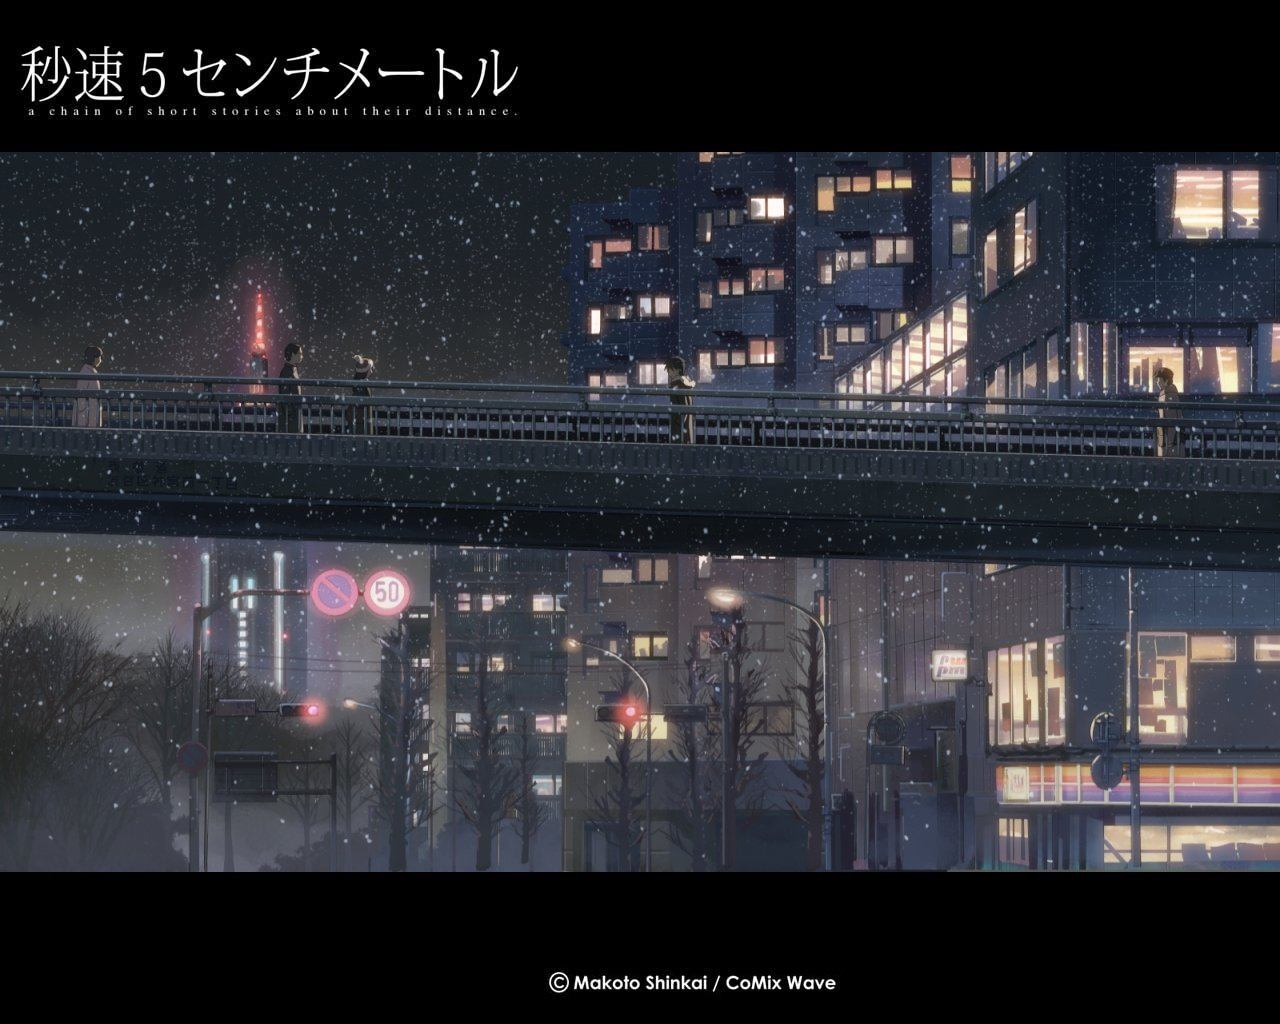 Download hd 1280x1024 5 (cm) Centimeters Per Second computer wallpaper ID:90021 for free